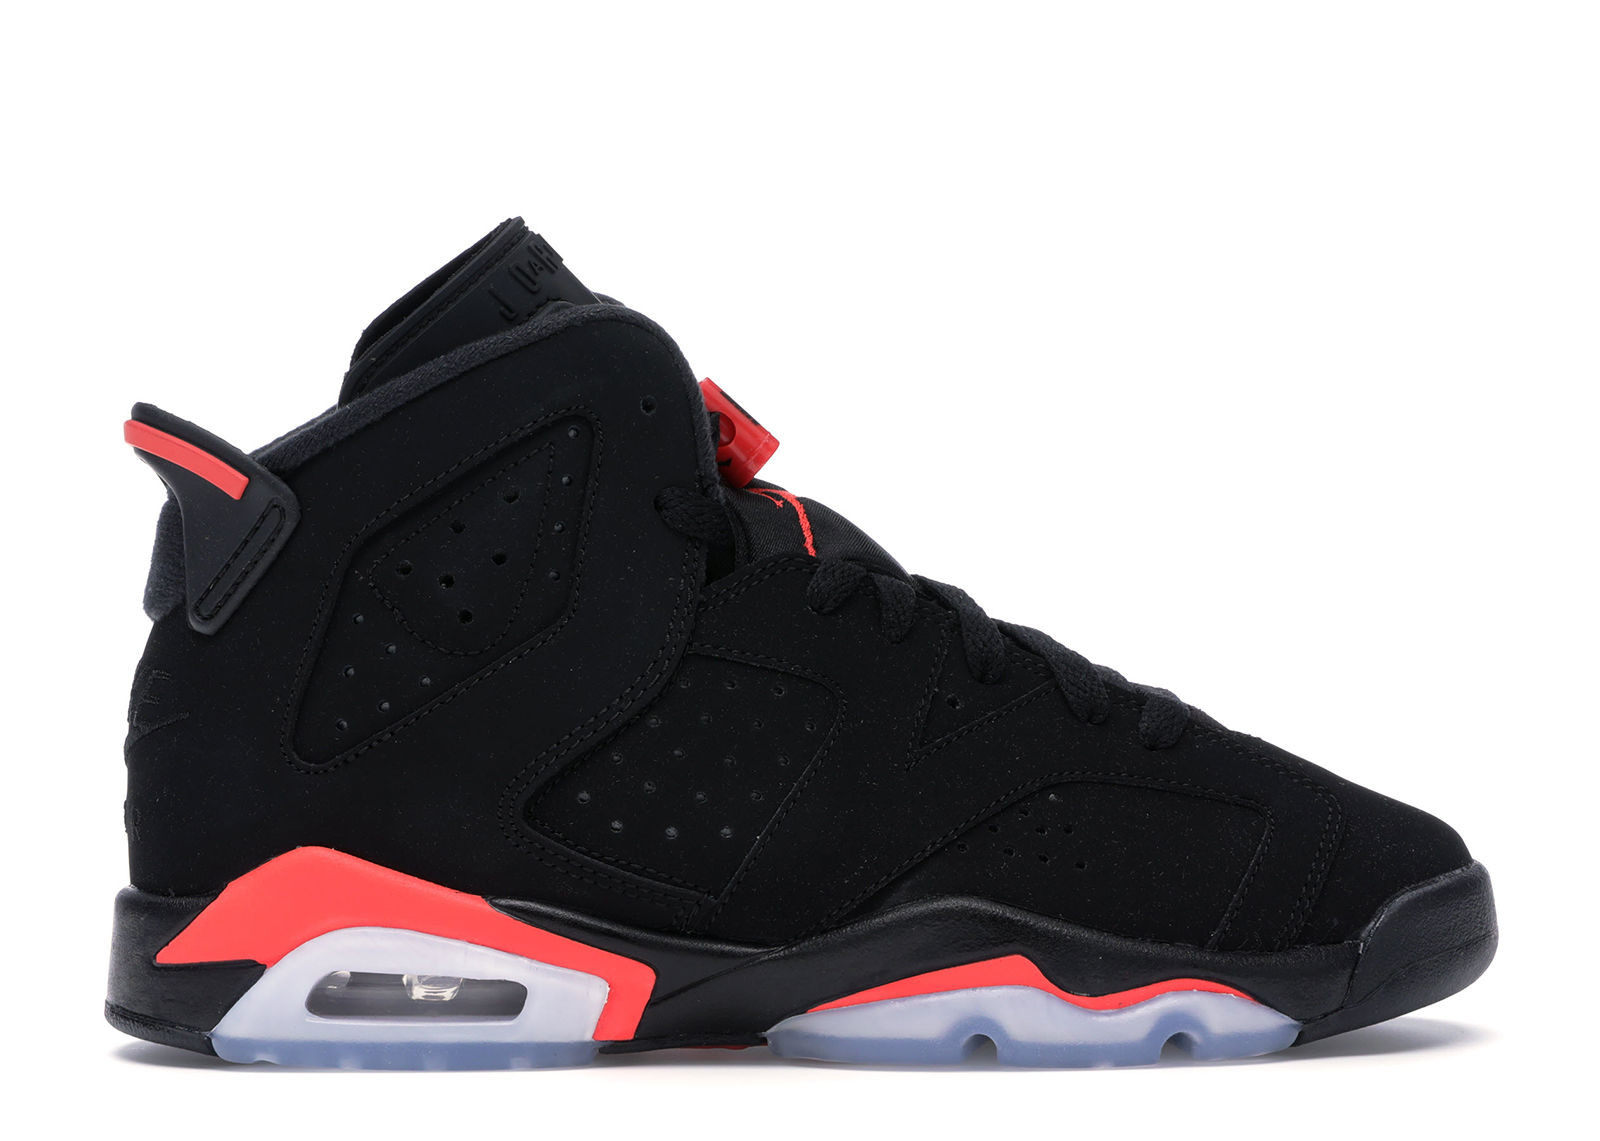 Jordan 6 Retro Black Infrared 2019 (GS)